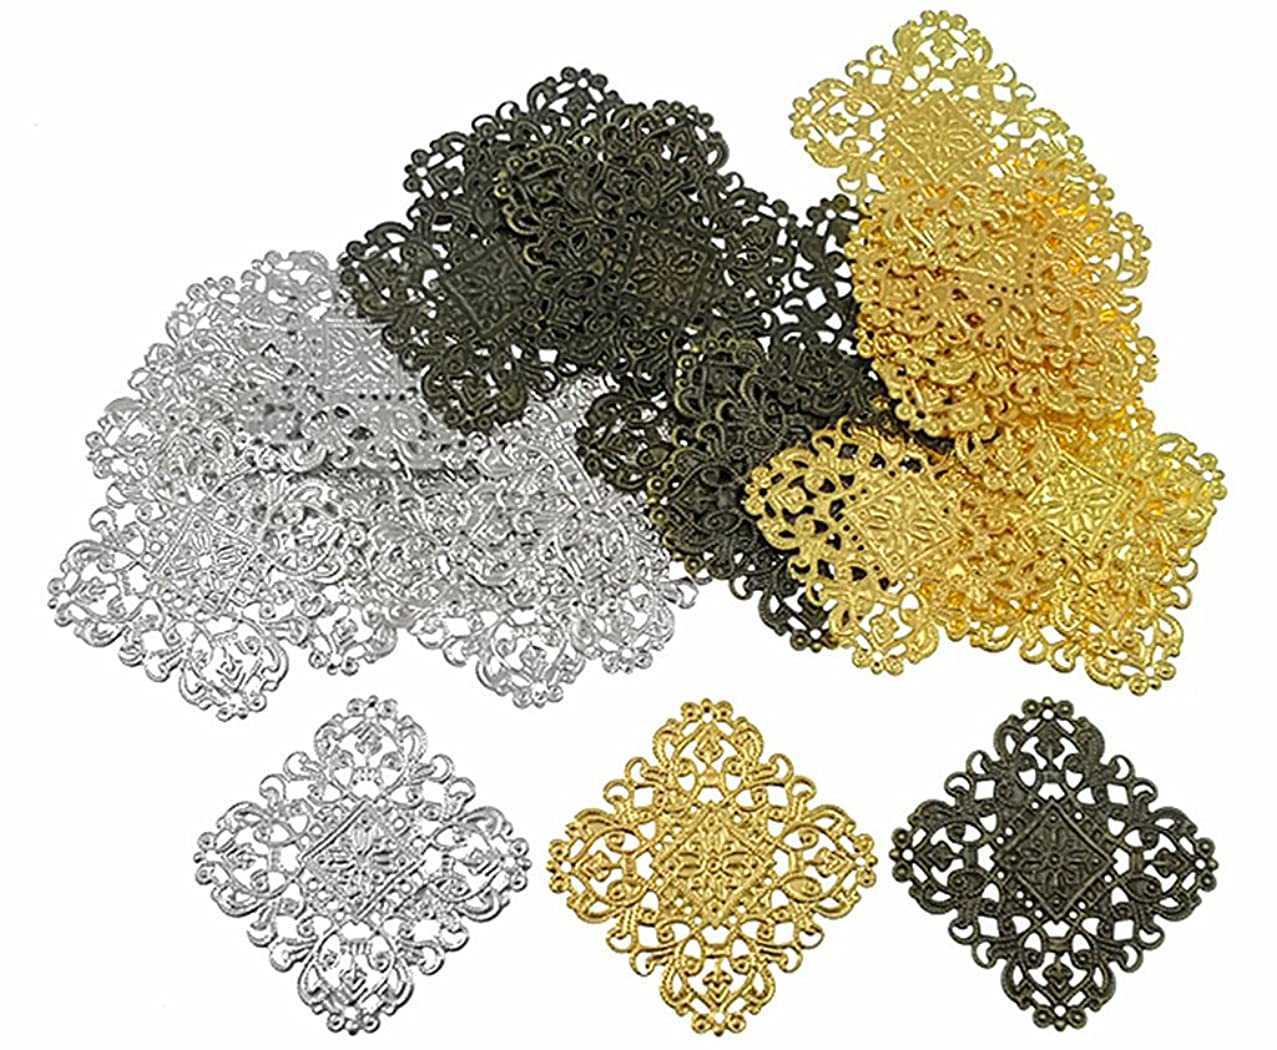 Filigree Wrap Charm Pendant Connector,Metal Laminate Decoration Supplies for DIY Hairpin Headwear Earring Costume Jewelry Making Findings(30pcs with Silver,Bronze and Gold Colors)